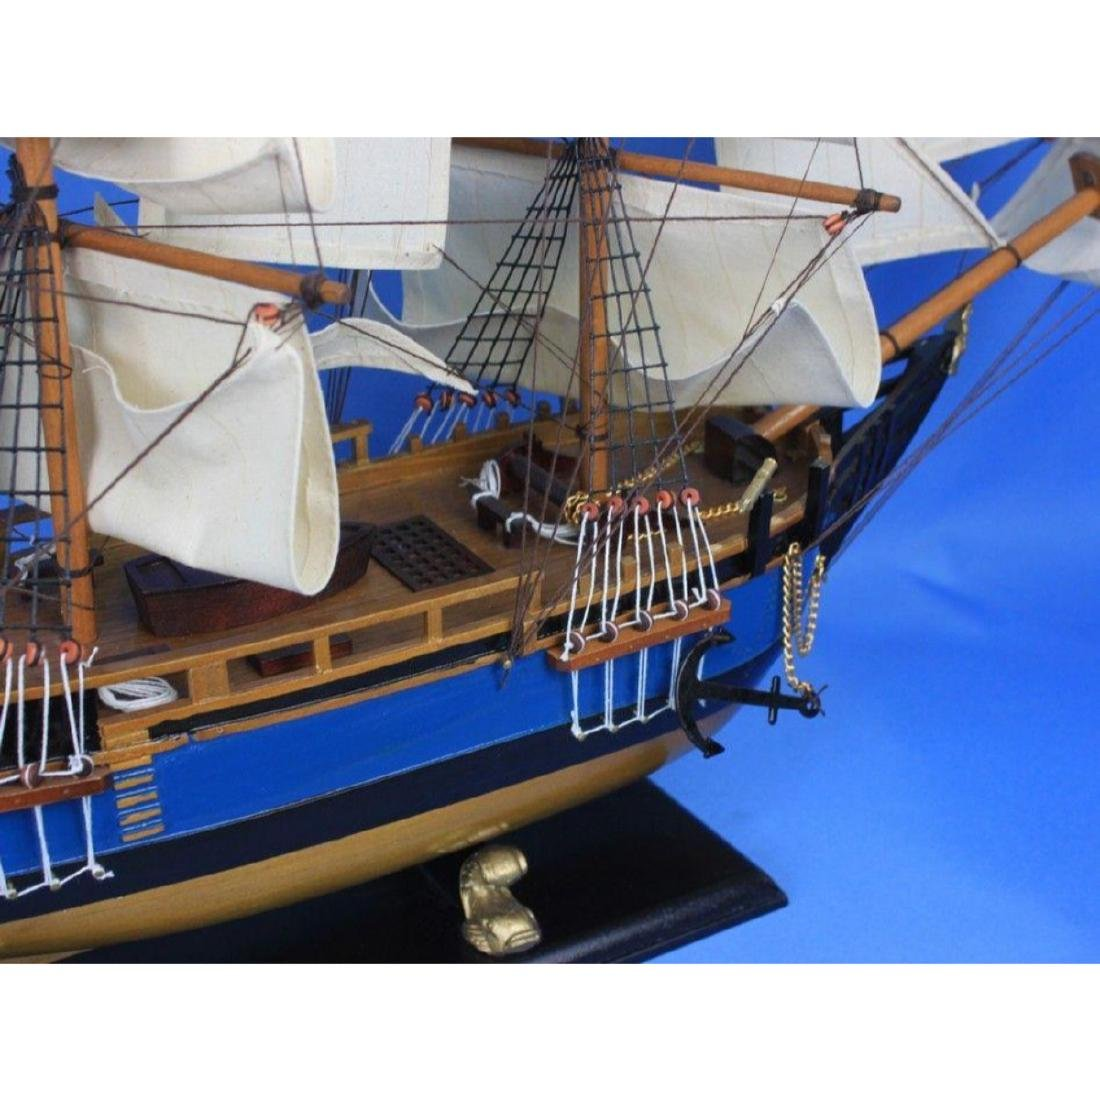 "Wooden HMS Bounty Tall Model Ship 34"" - 9"